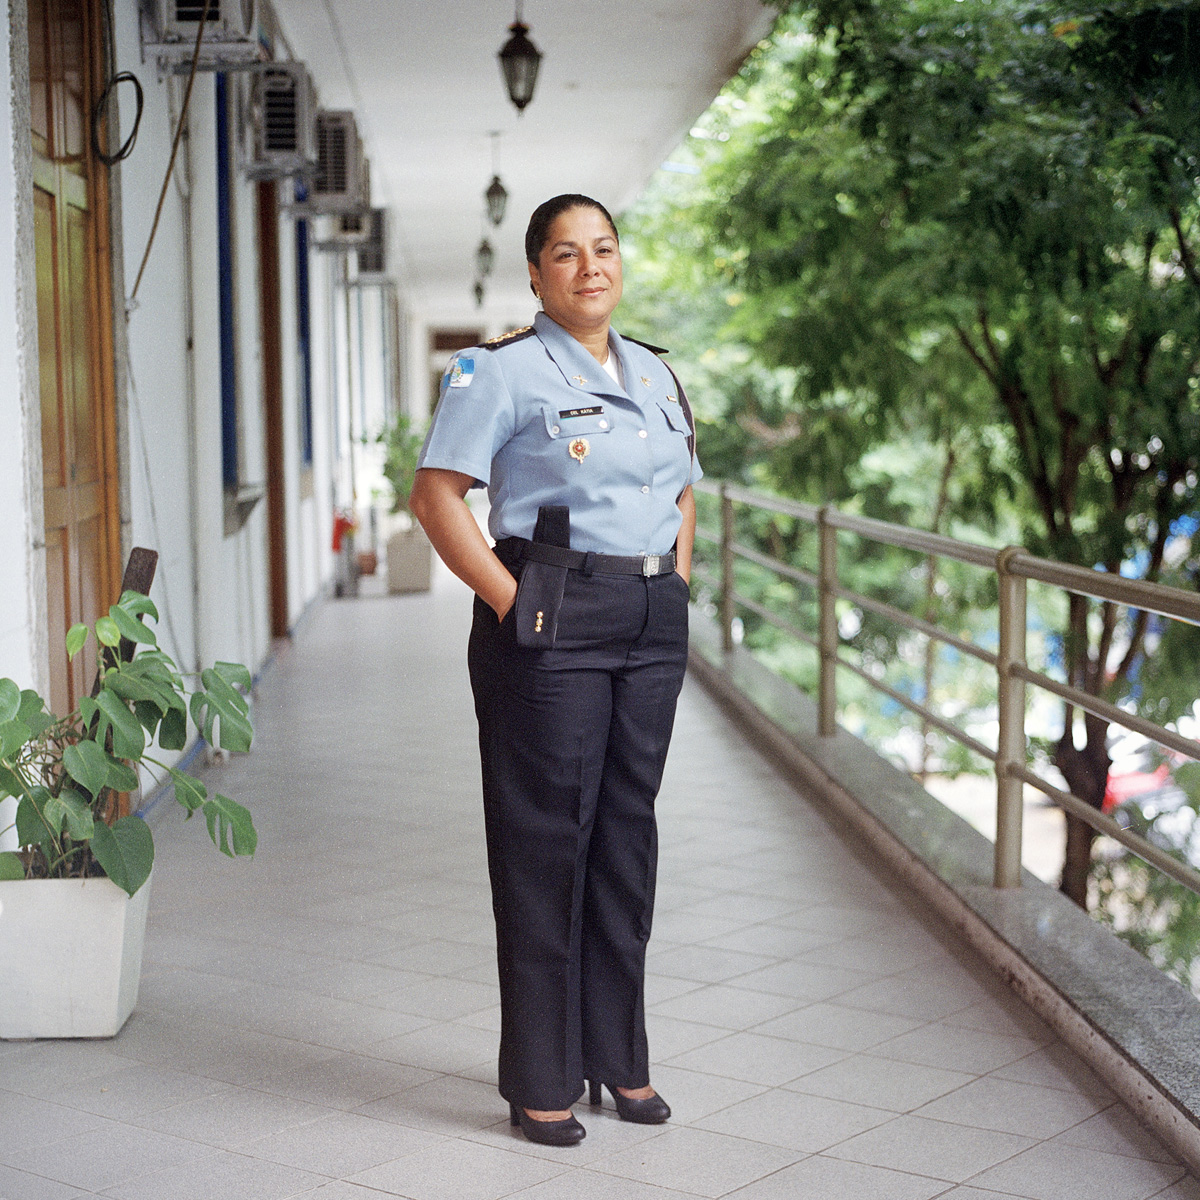 Coronel Katia Boaventura, Military Police Cabinet Chief, in Rio de Janeiro, Brazil. She is the first woman to become a Colonel.